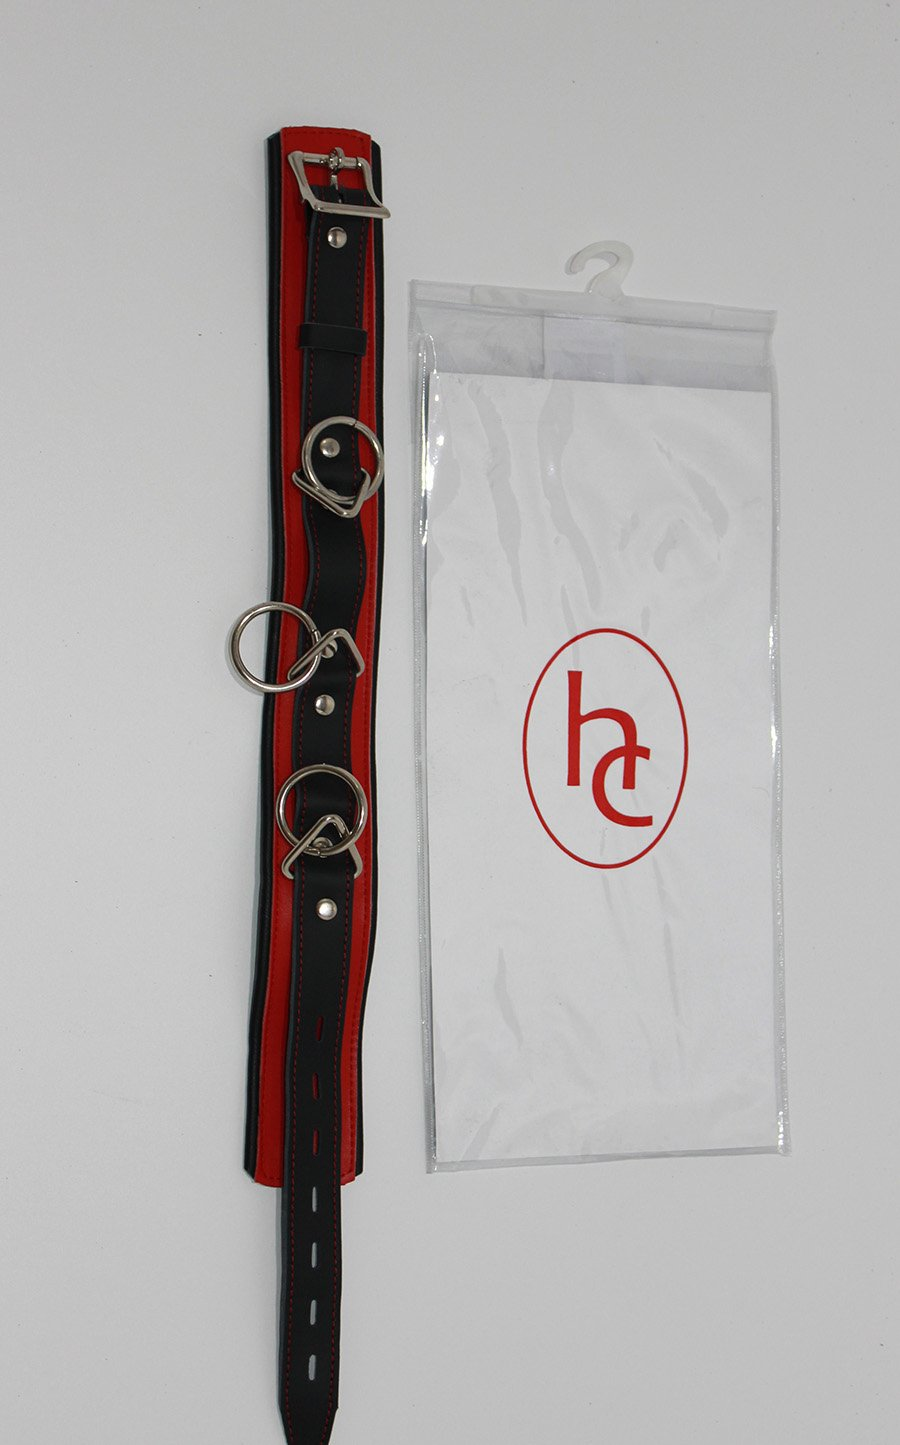 bondageinc Bondage Bondage bondageinc Red and Black Collar with O-Rings 92479c